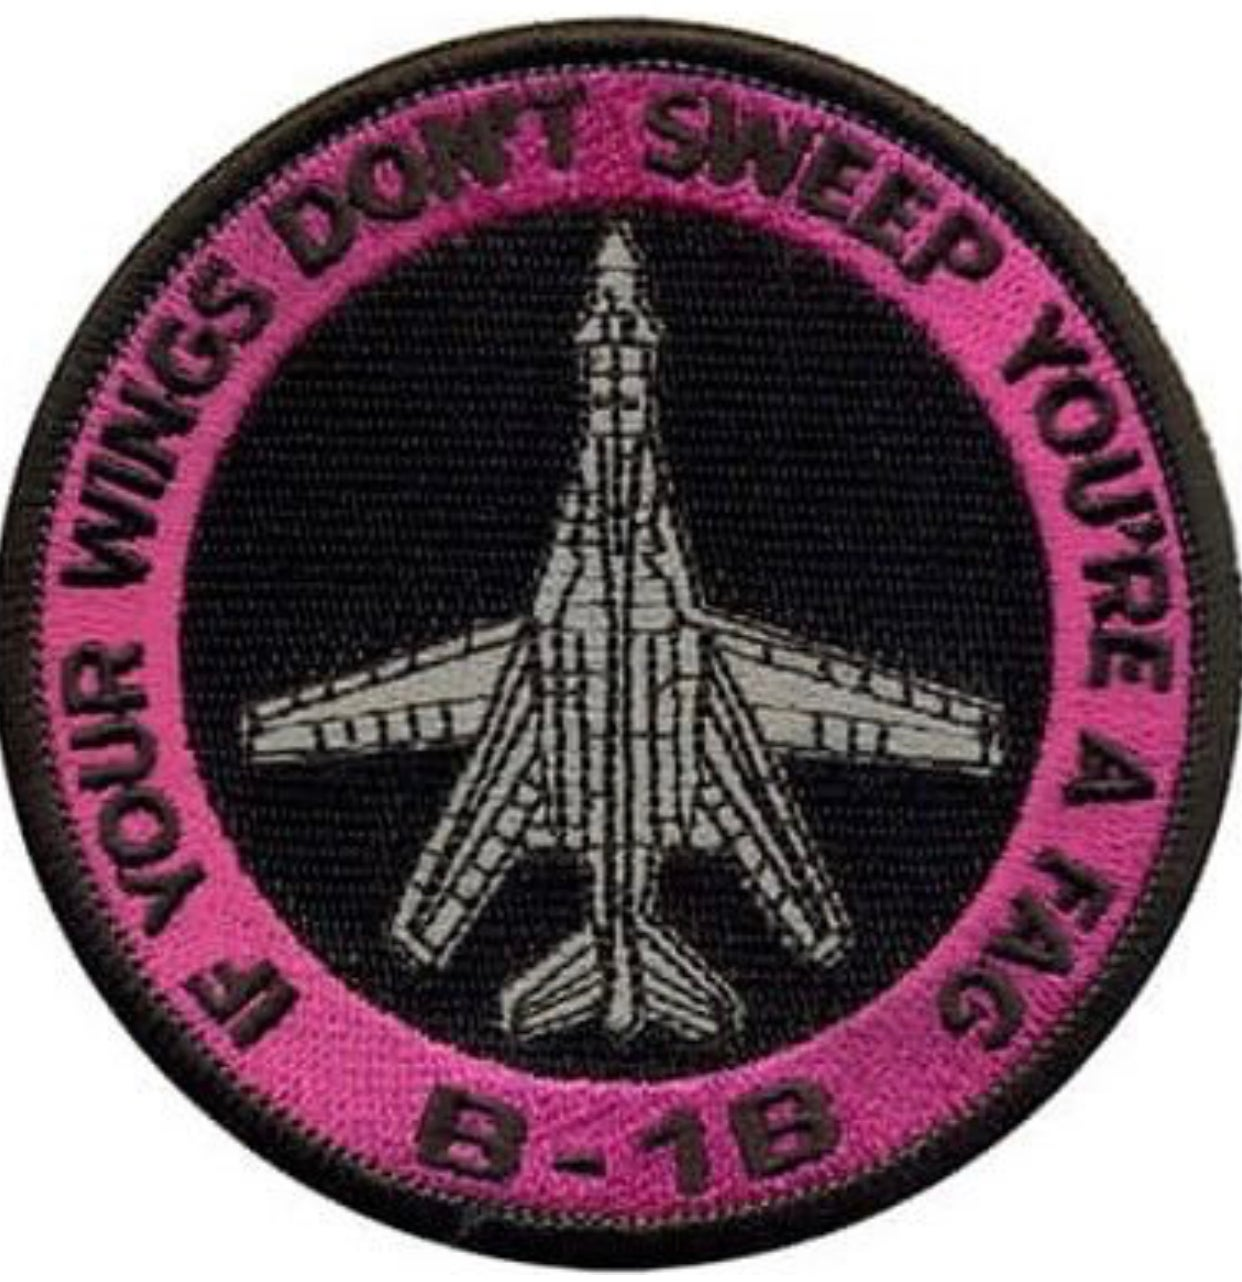 Image of B-1B 'You're a Fag' Patch (PINK)